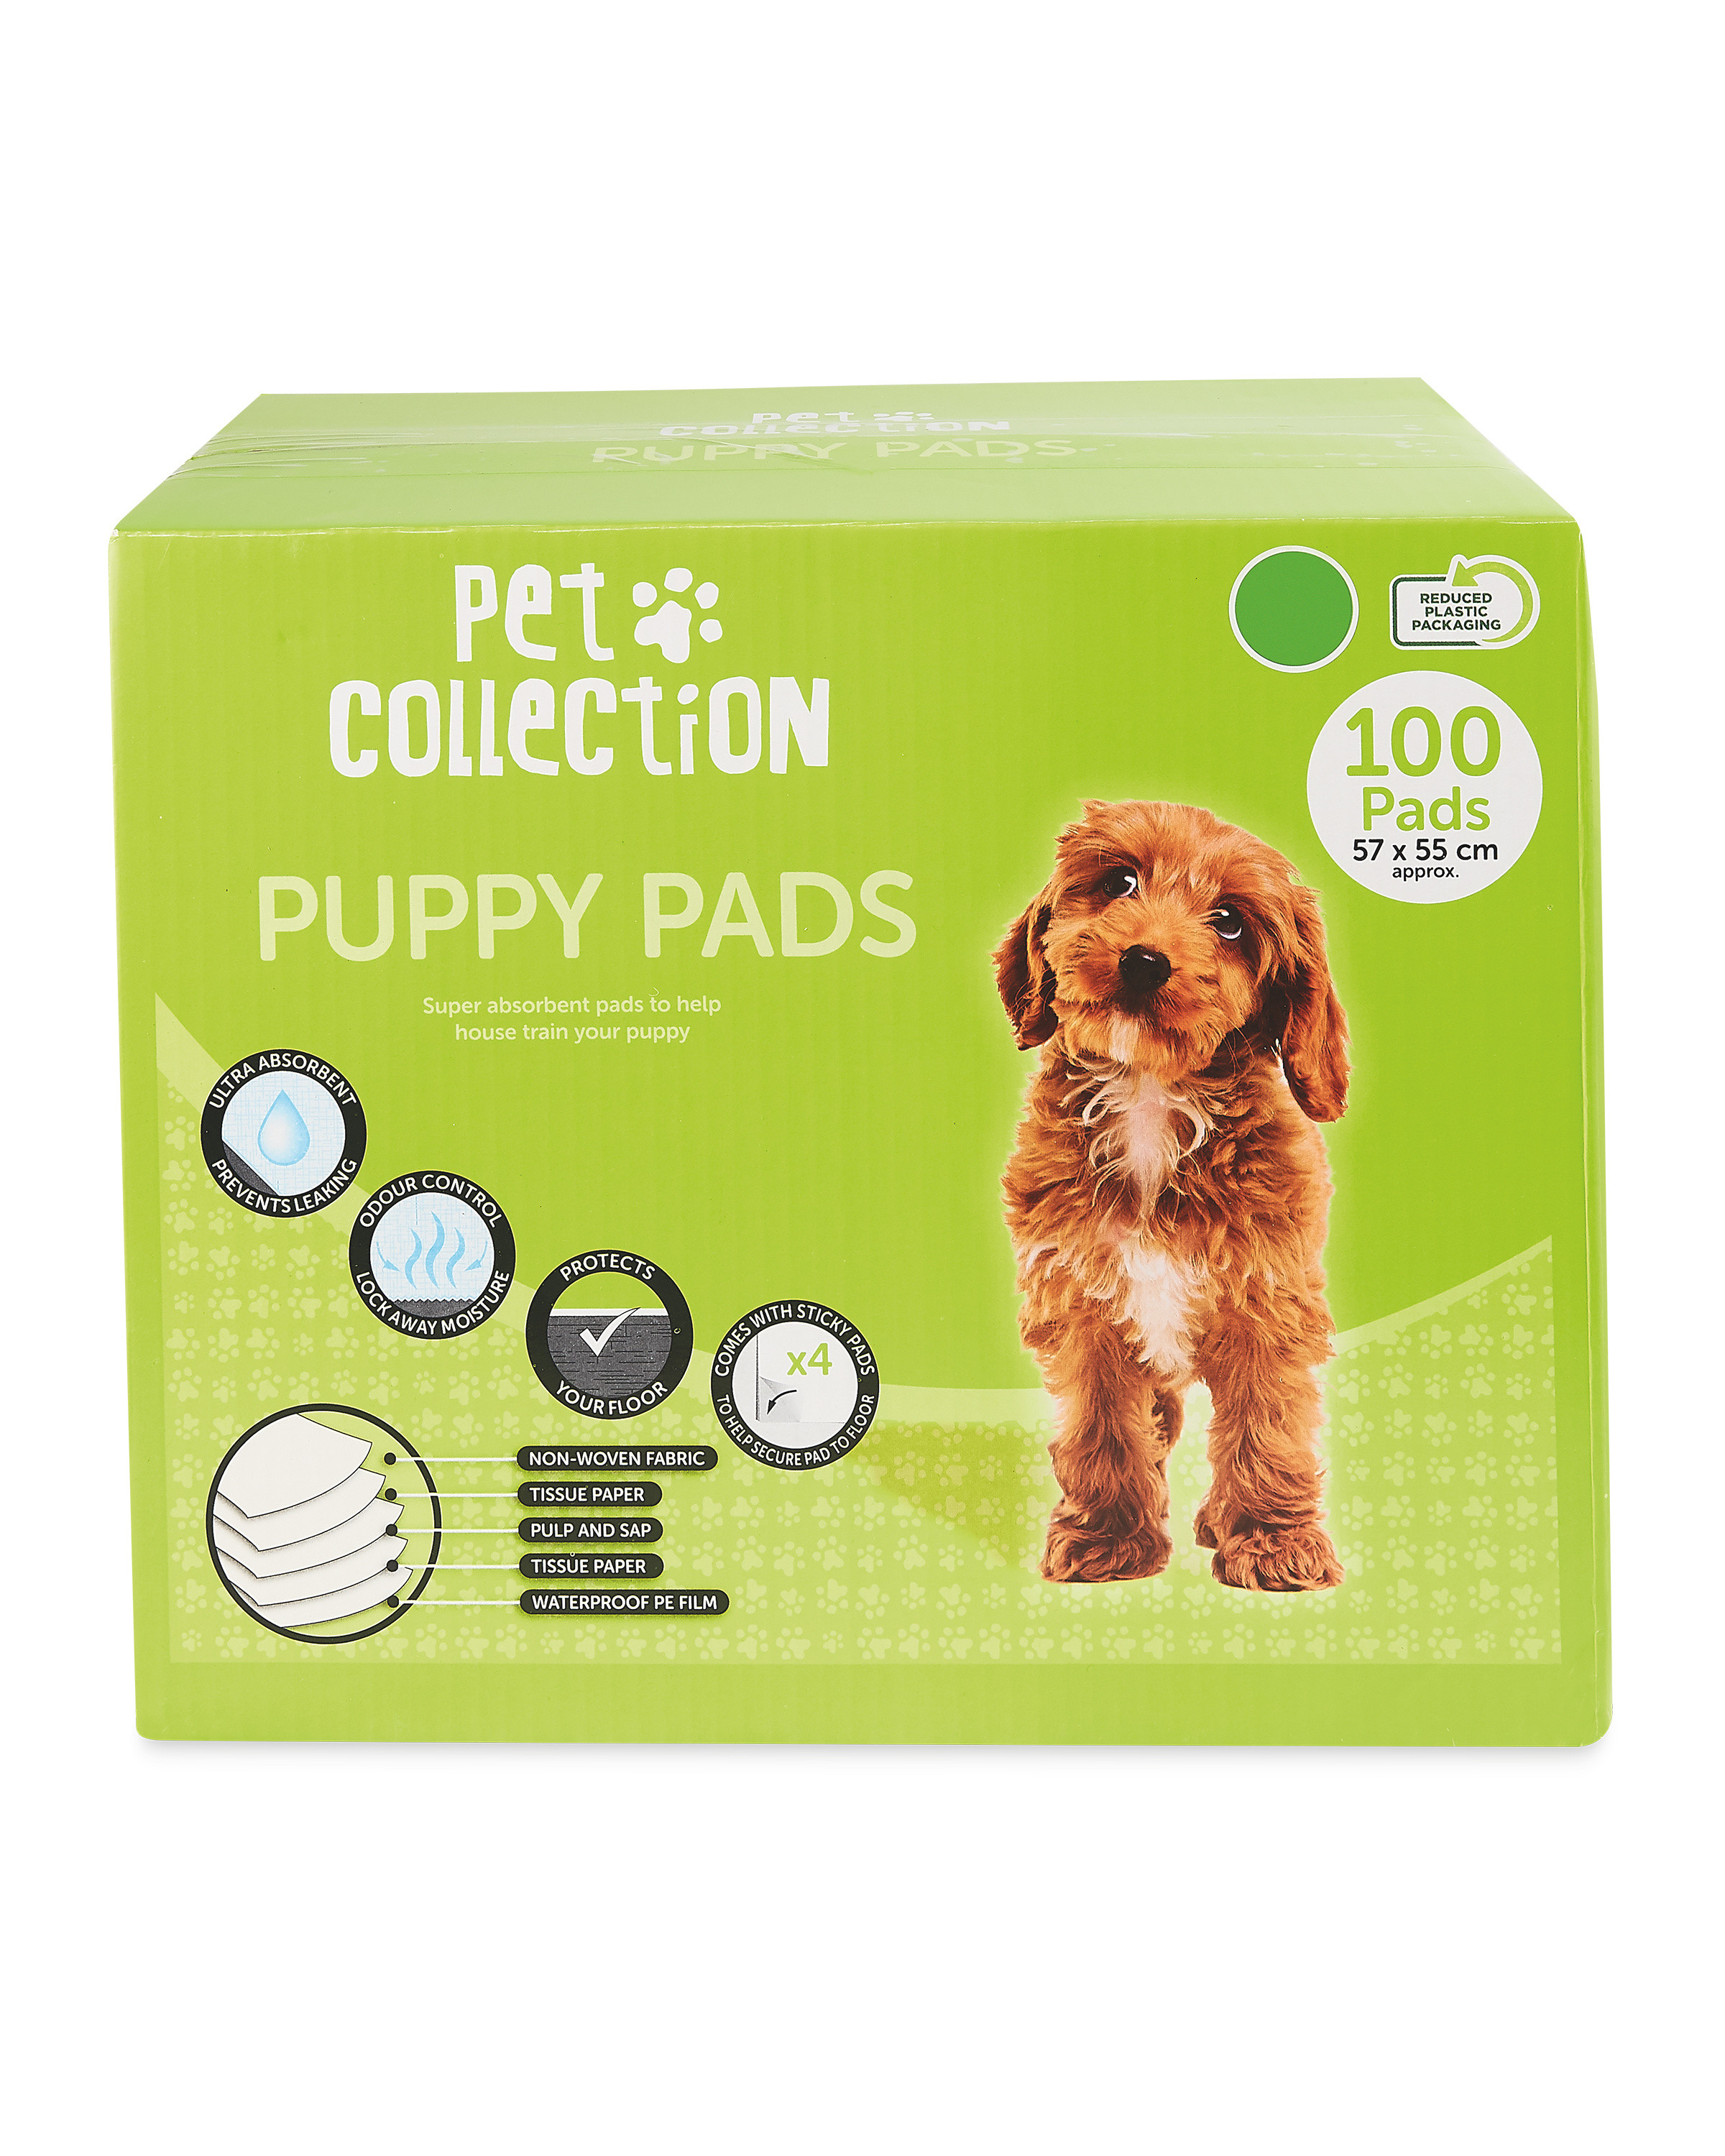 Pet Collection Puppy Pads 100 Pack